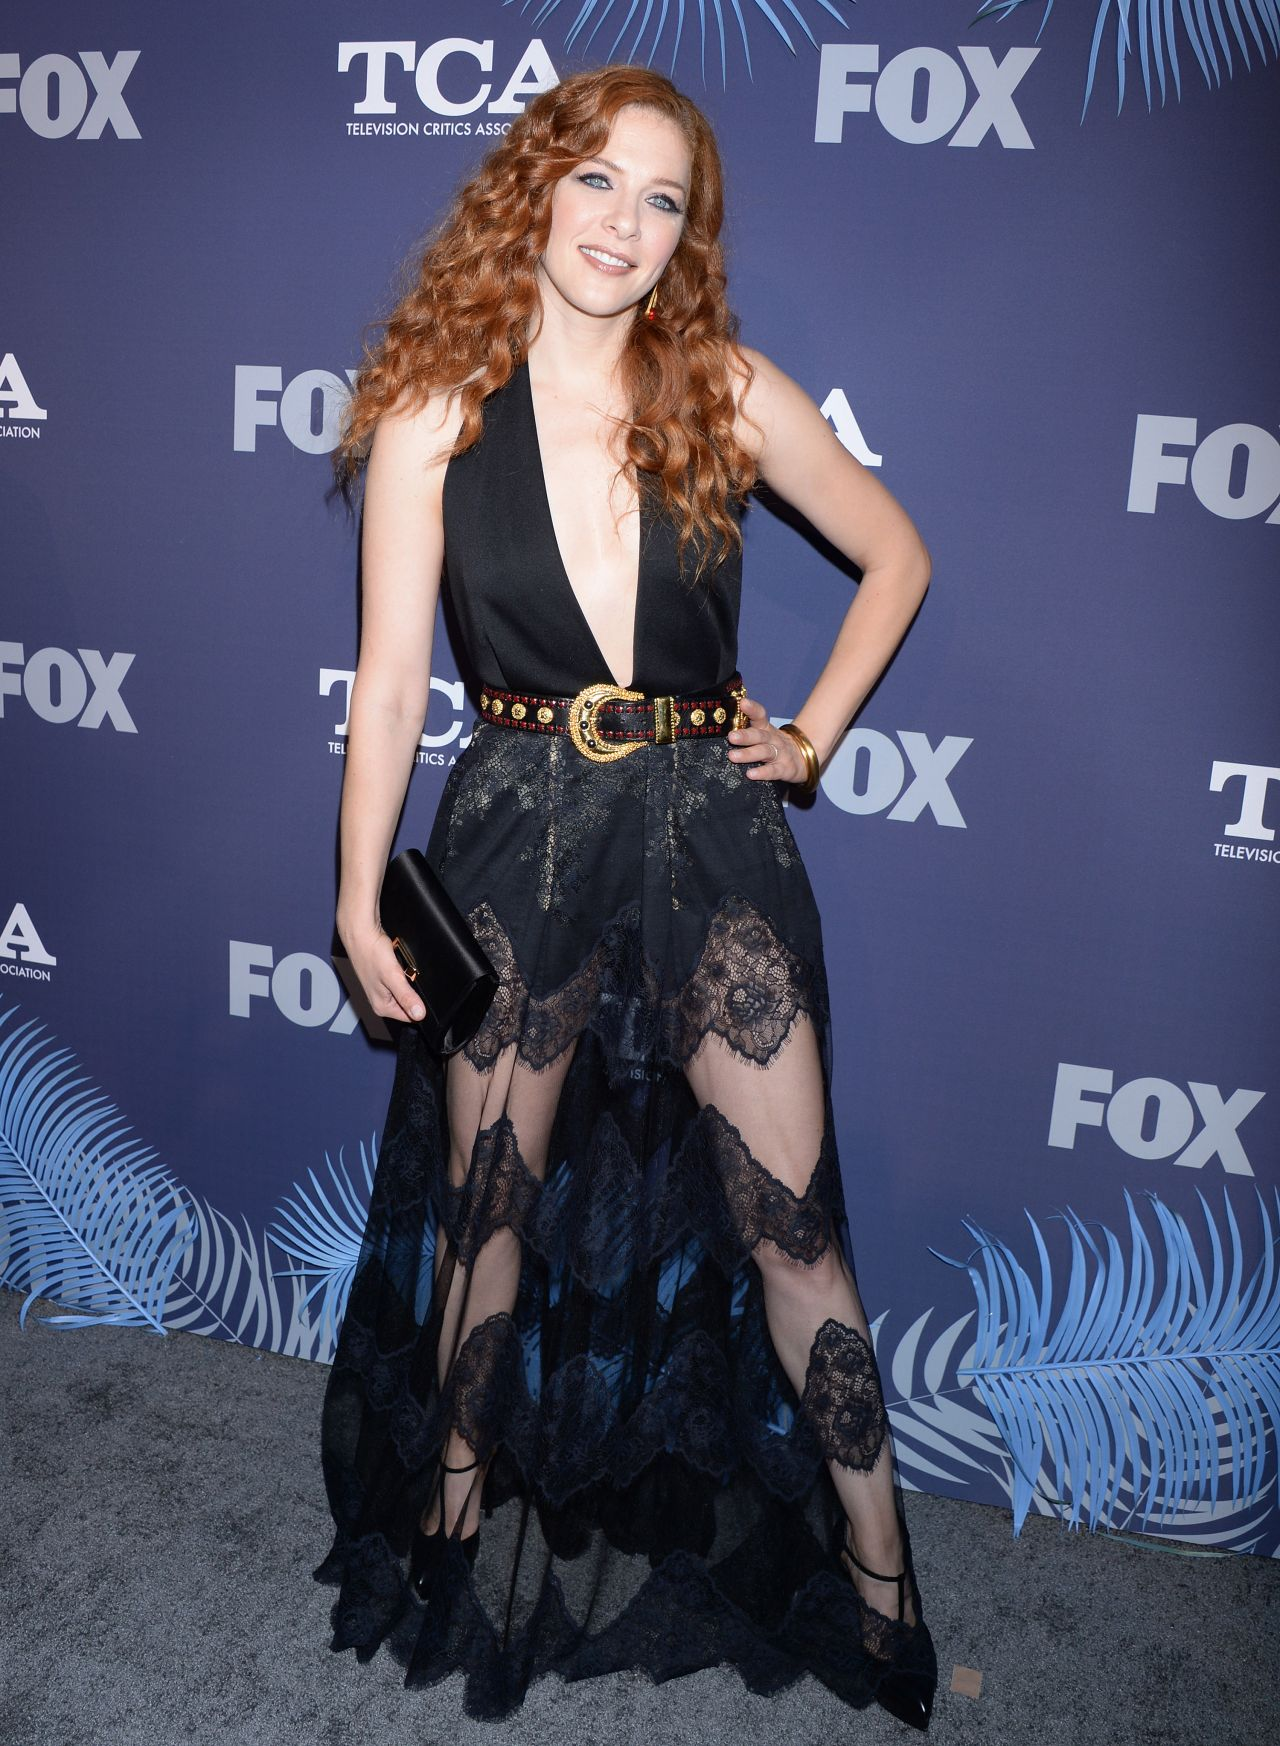 Rachelle Lefevre FOX Summer TCA 2018 All Star Party In